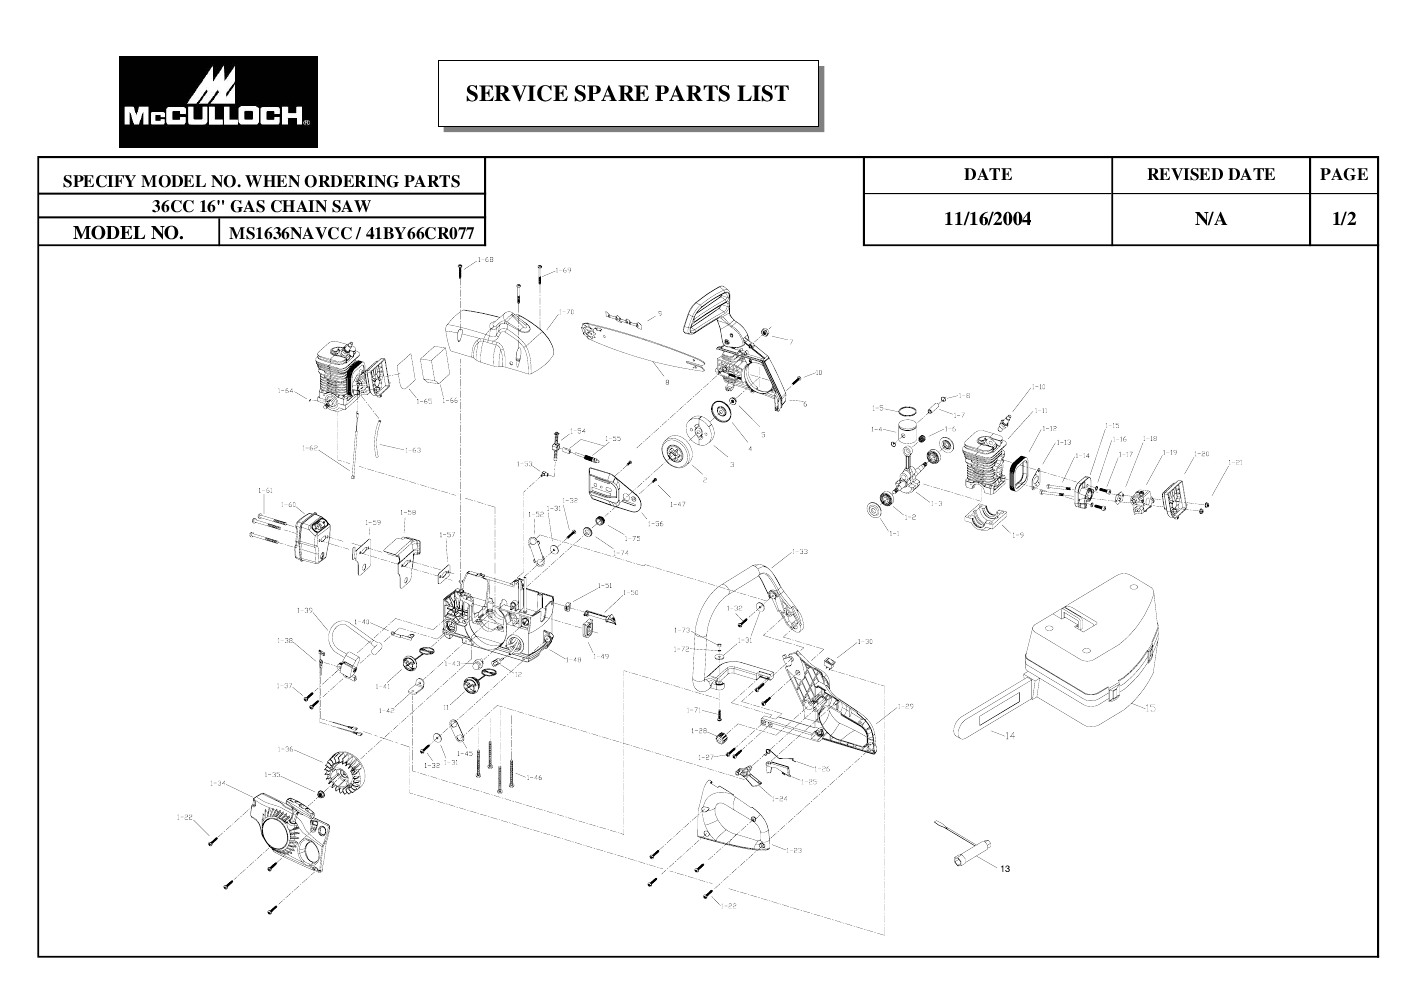 Mcculloch Mac 140 Manual Pdf Wiring Diagrams on Subaru Forester Repair Manual